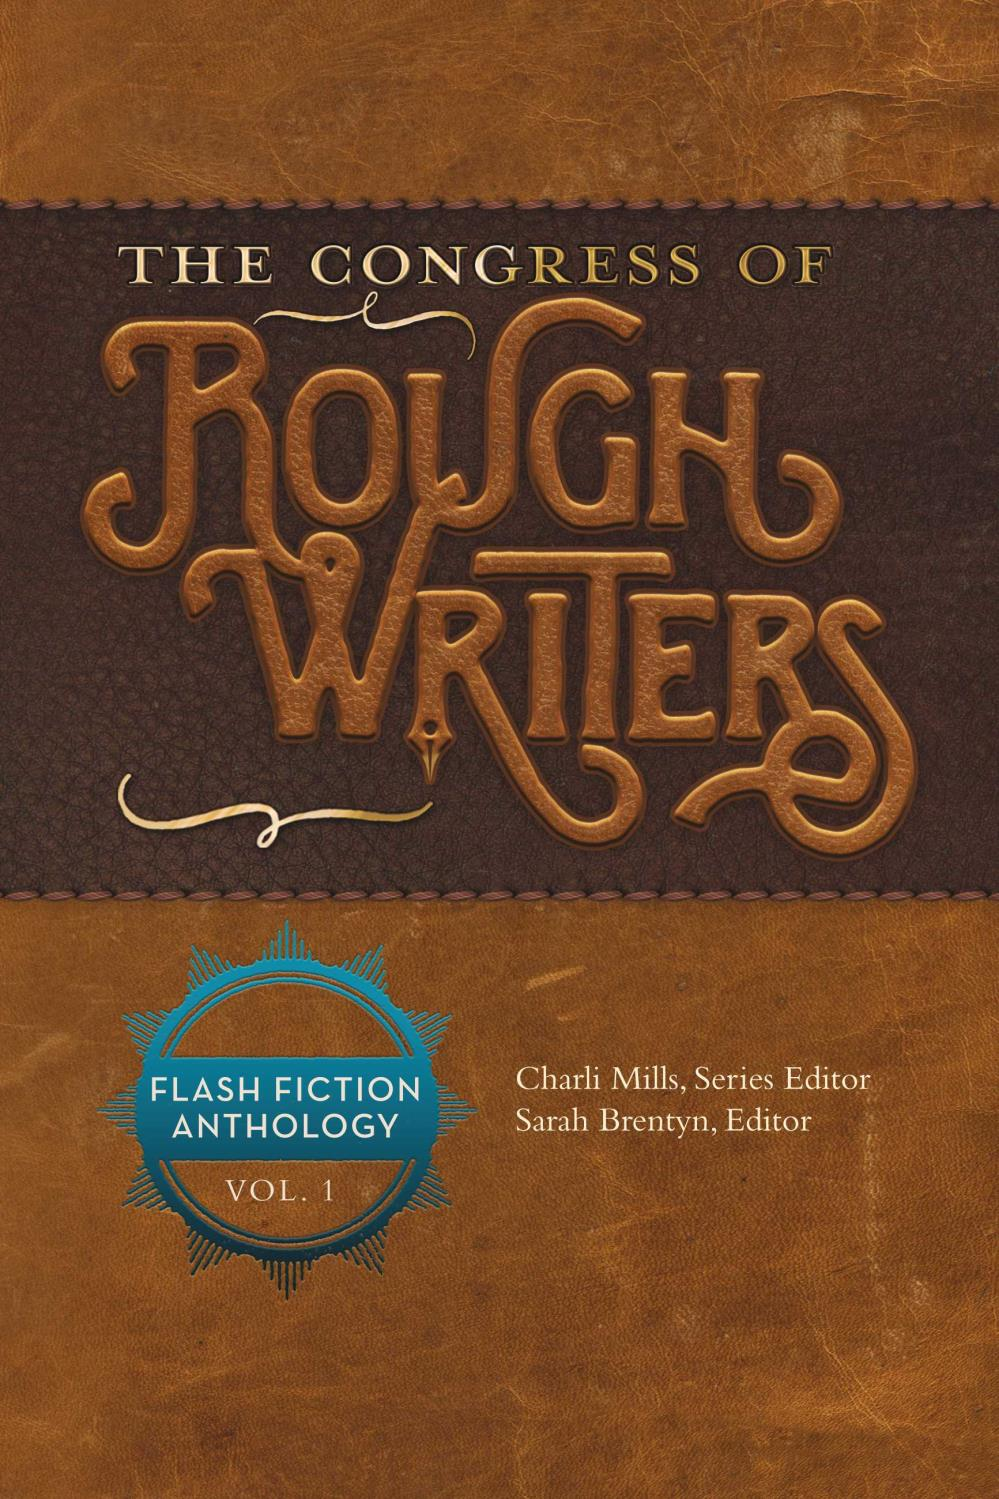 The Congress of the Rough Writers Flash Fiction Anthology Vol. 1 Image